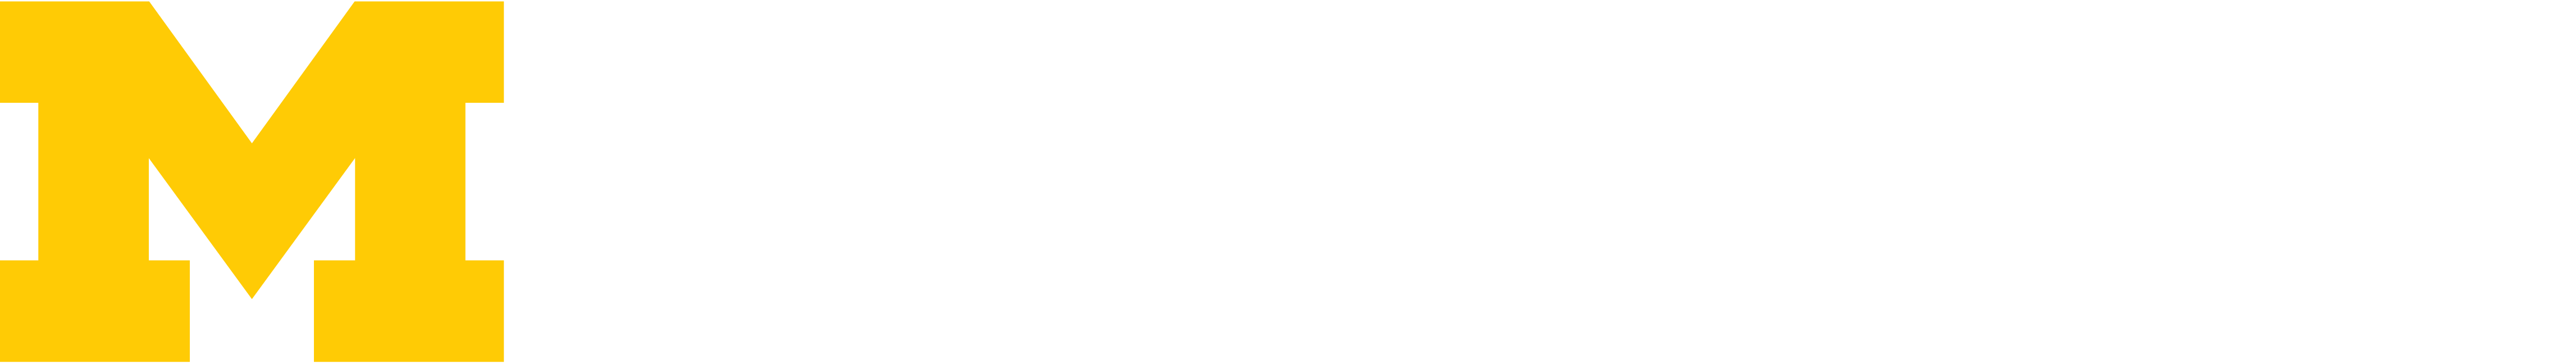 Campus Involvement logo